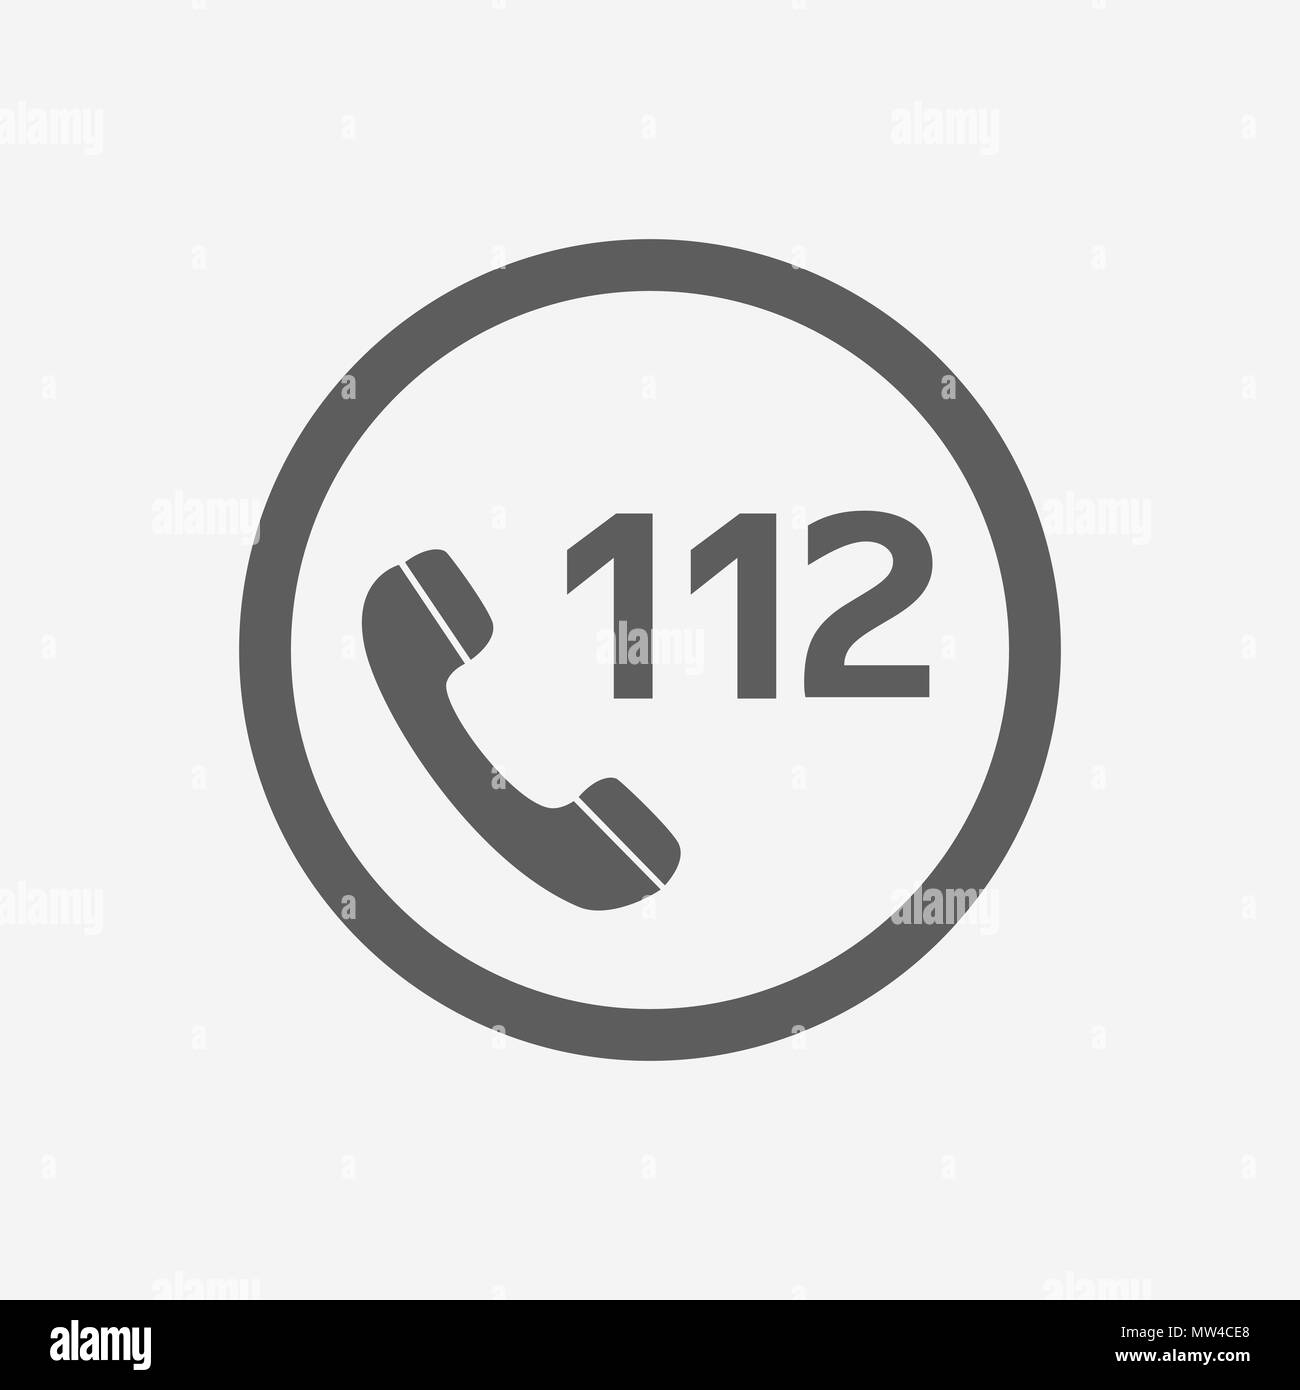 112 Emergency Call Vector Icon Illustration For Web And Mobile App Isolated White Backround.Ui Ux - Stock Image